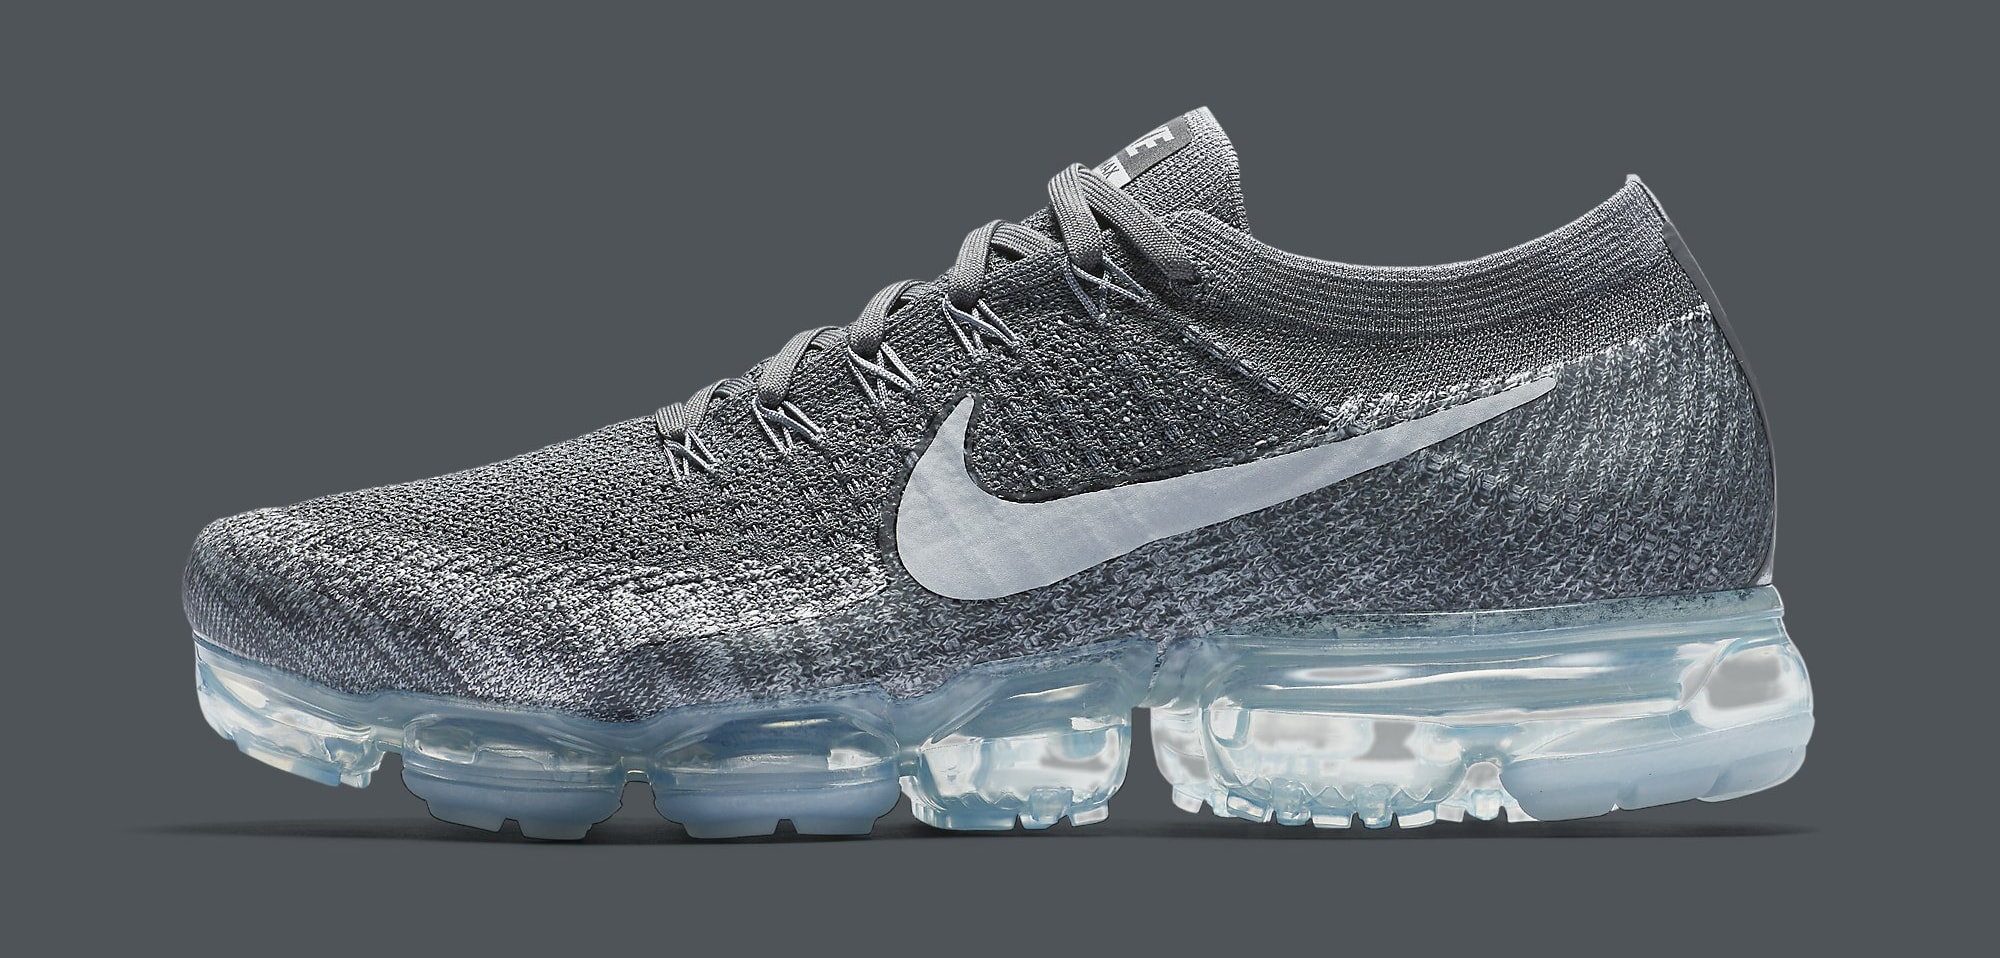 Buy Cheap Nike Air Vapormax Running Shoes Sale Online 2017